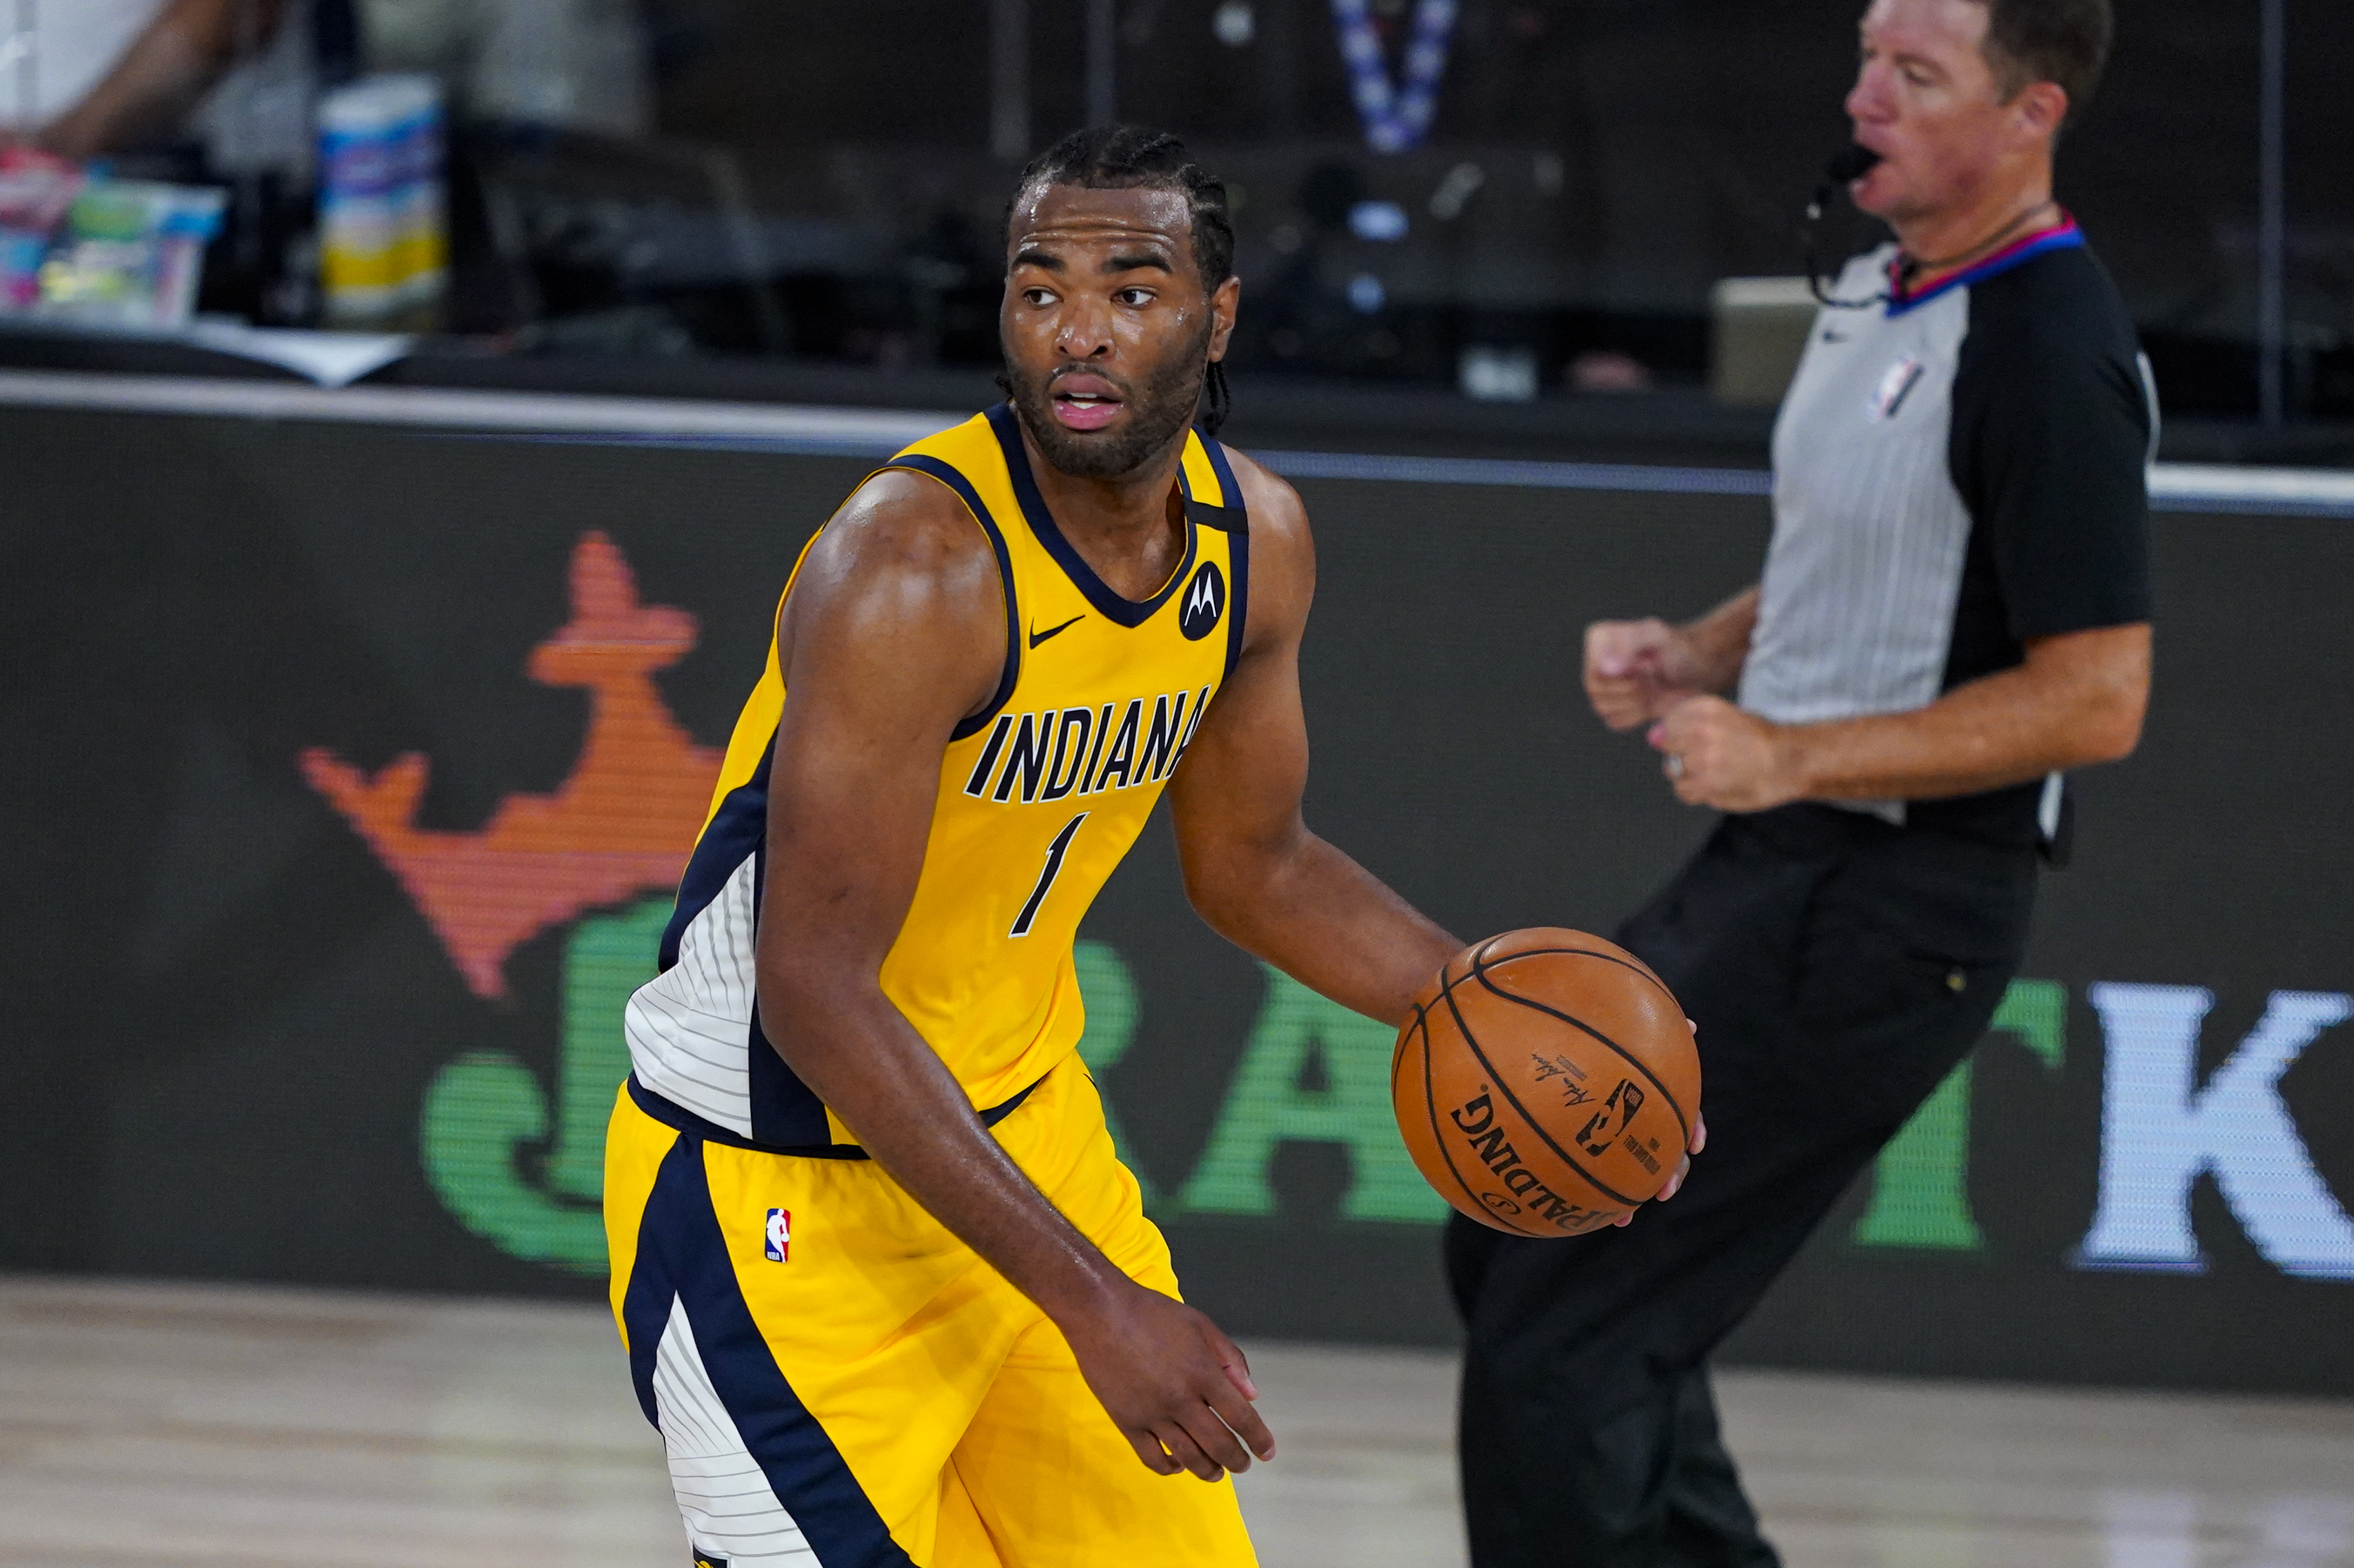 T.J. Warren of the Indiana Pacers controls the ball